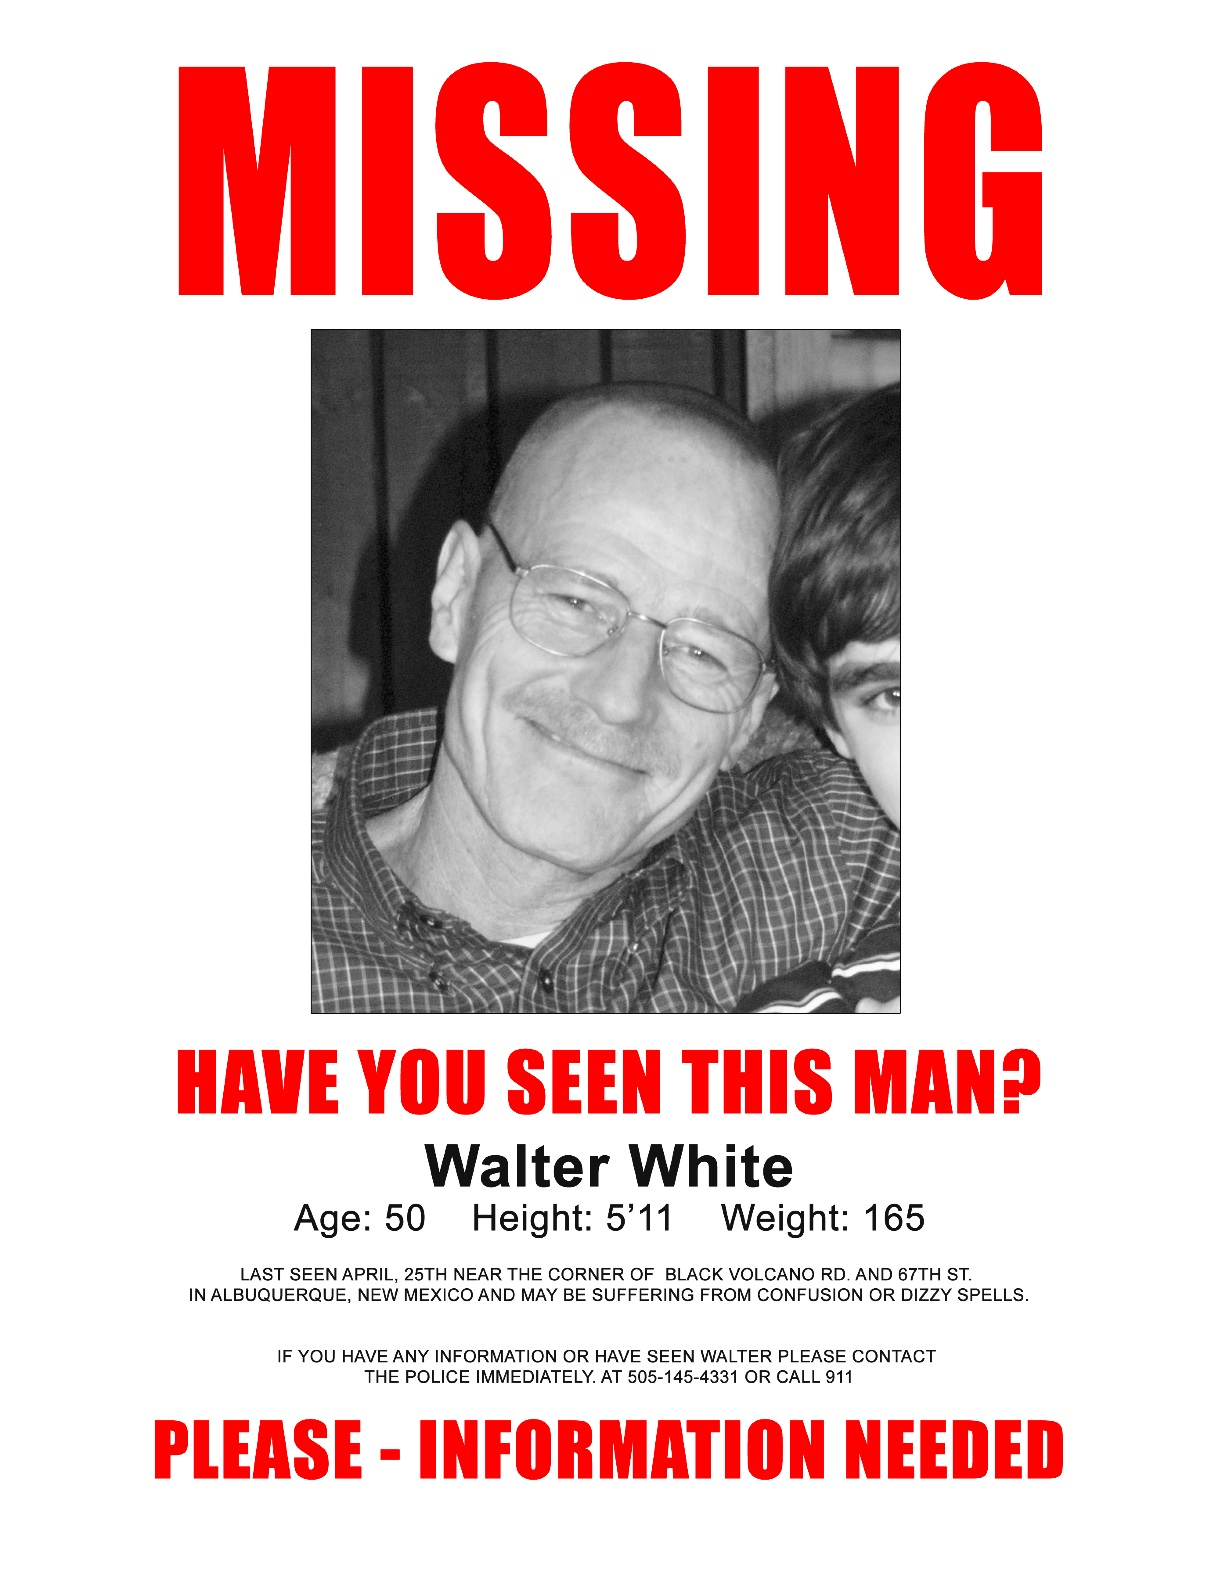 Delightful Walt Missing Poster  Make Missing Poster